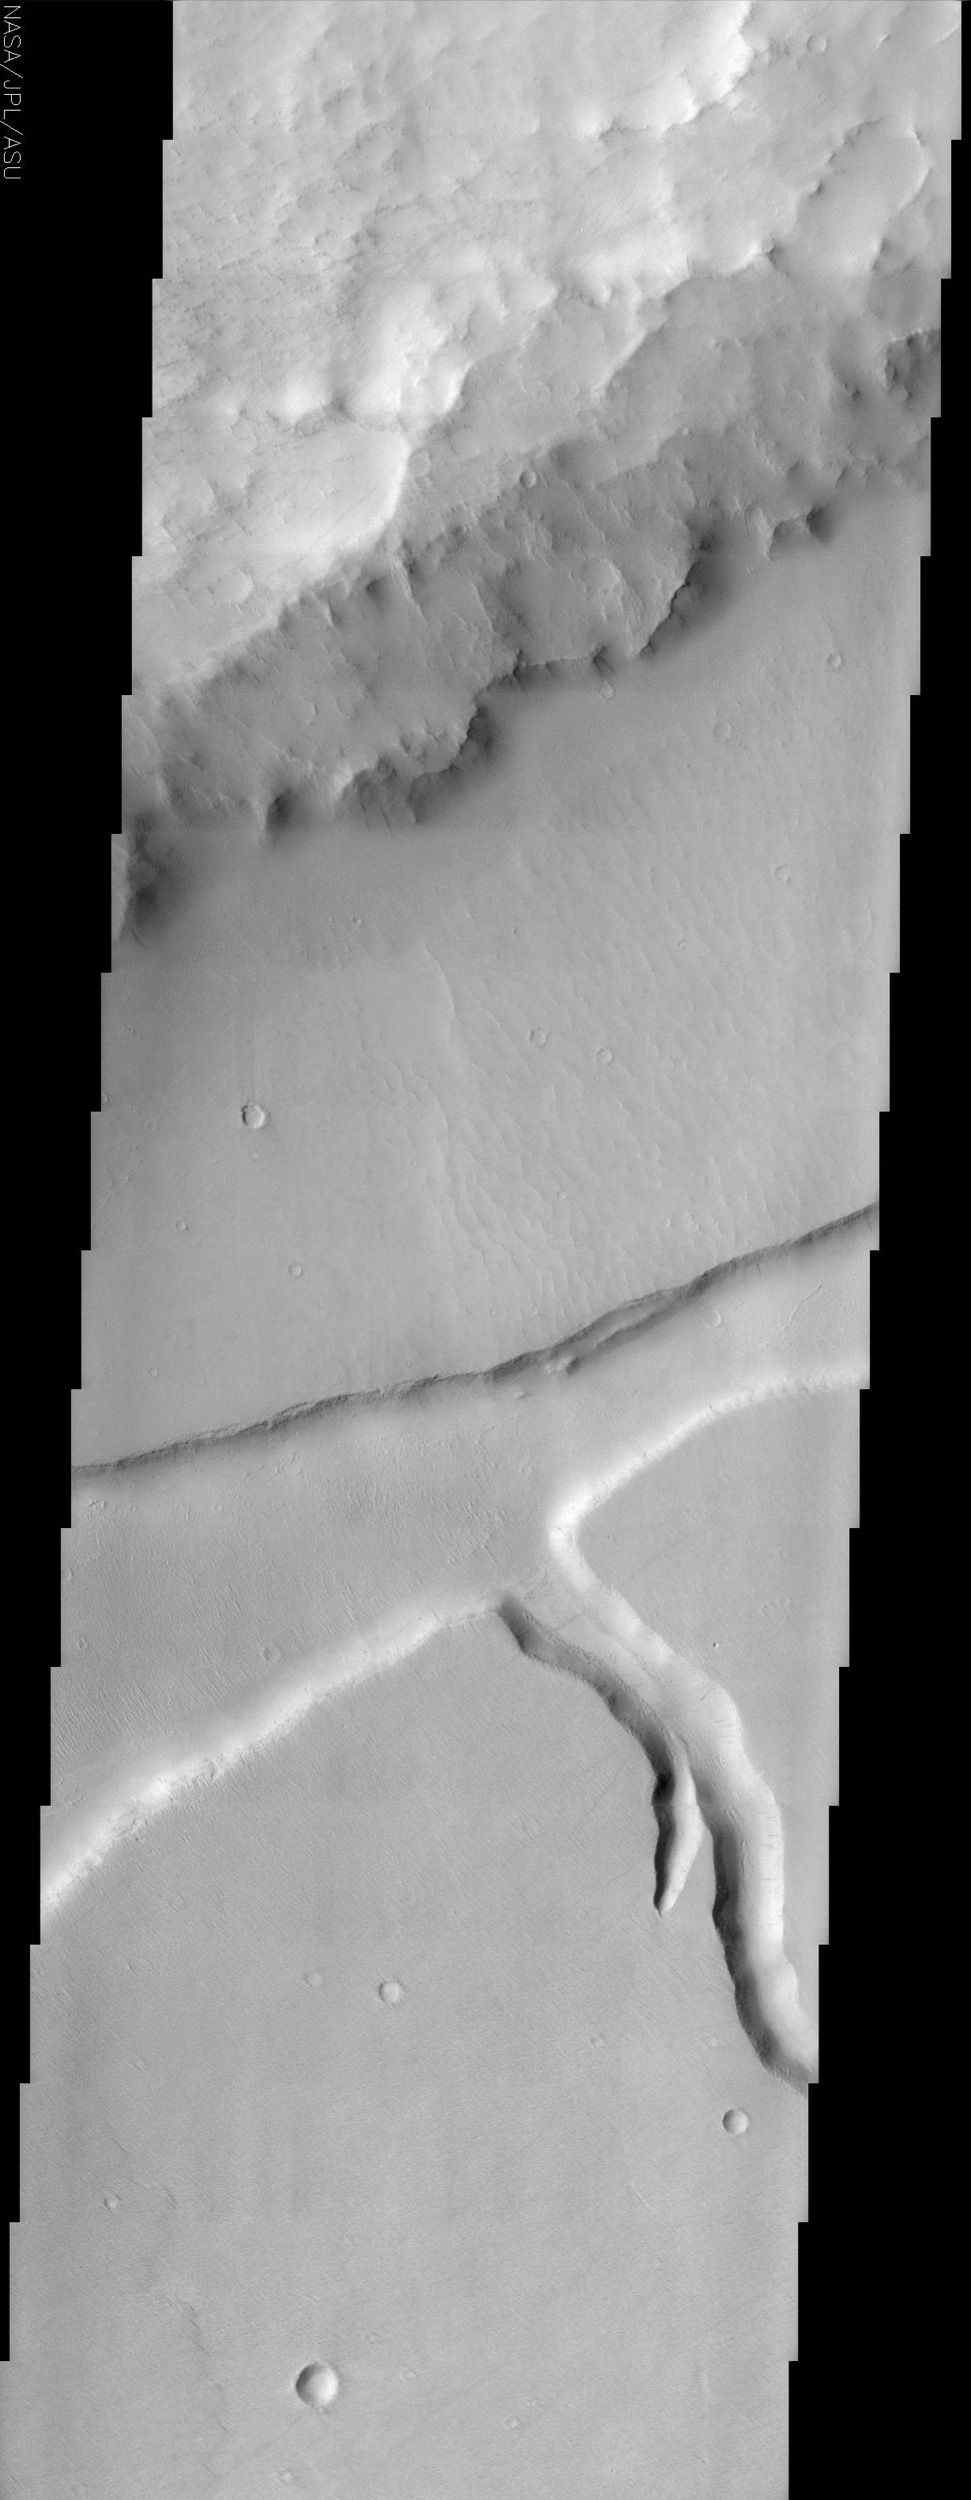 This image from NASA's Mars Odyssey captures Mangala Fossa. Mangala Fossa is a graben, which in geologic terminology translates into a long parallel to semi-parallel fracture or trough.